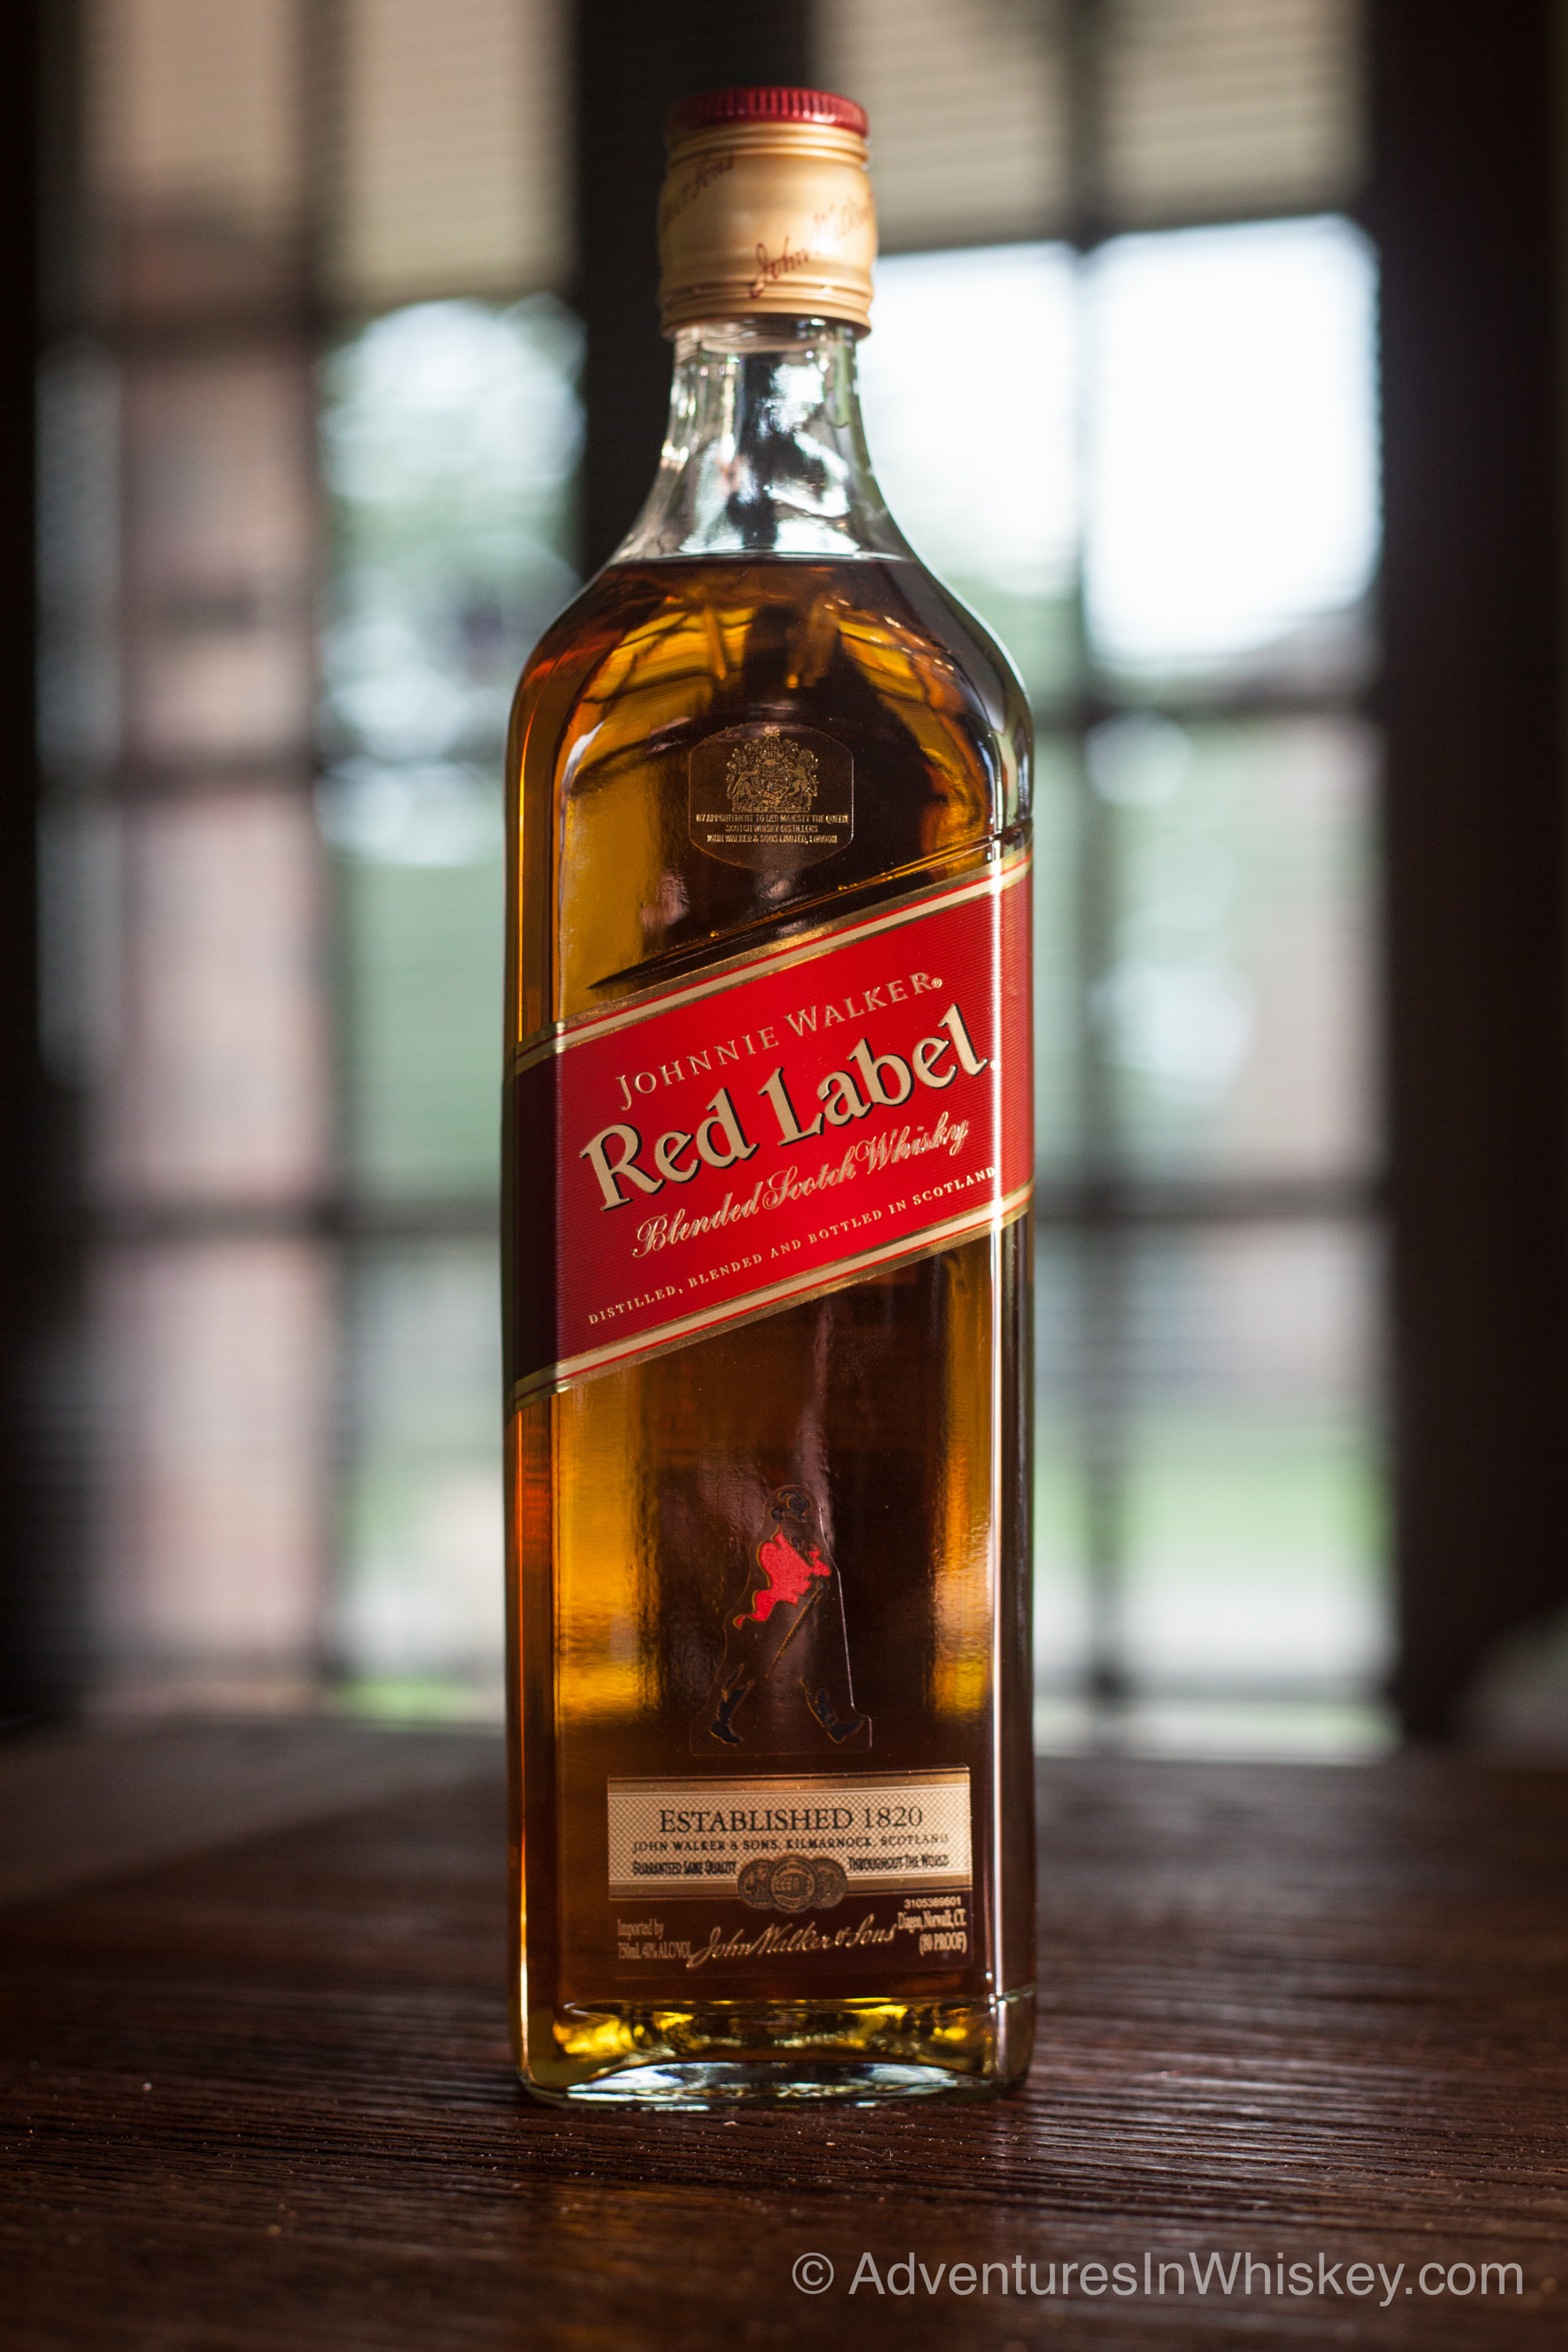 Johnnie Walker Red Label Scotch Whisky Review | Adventures